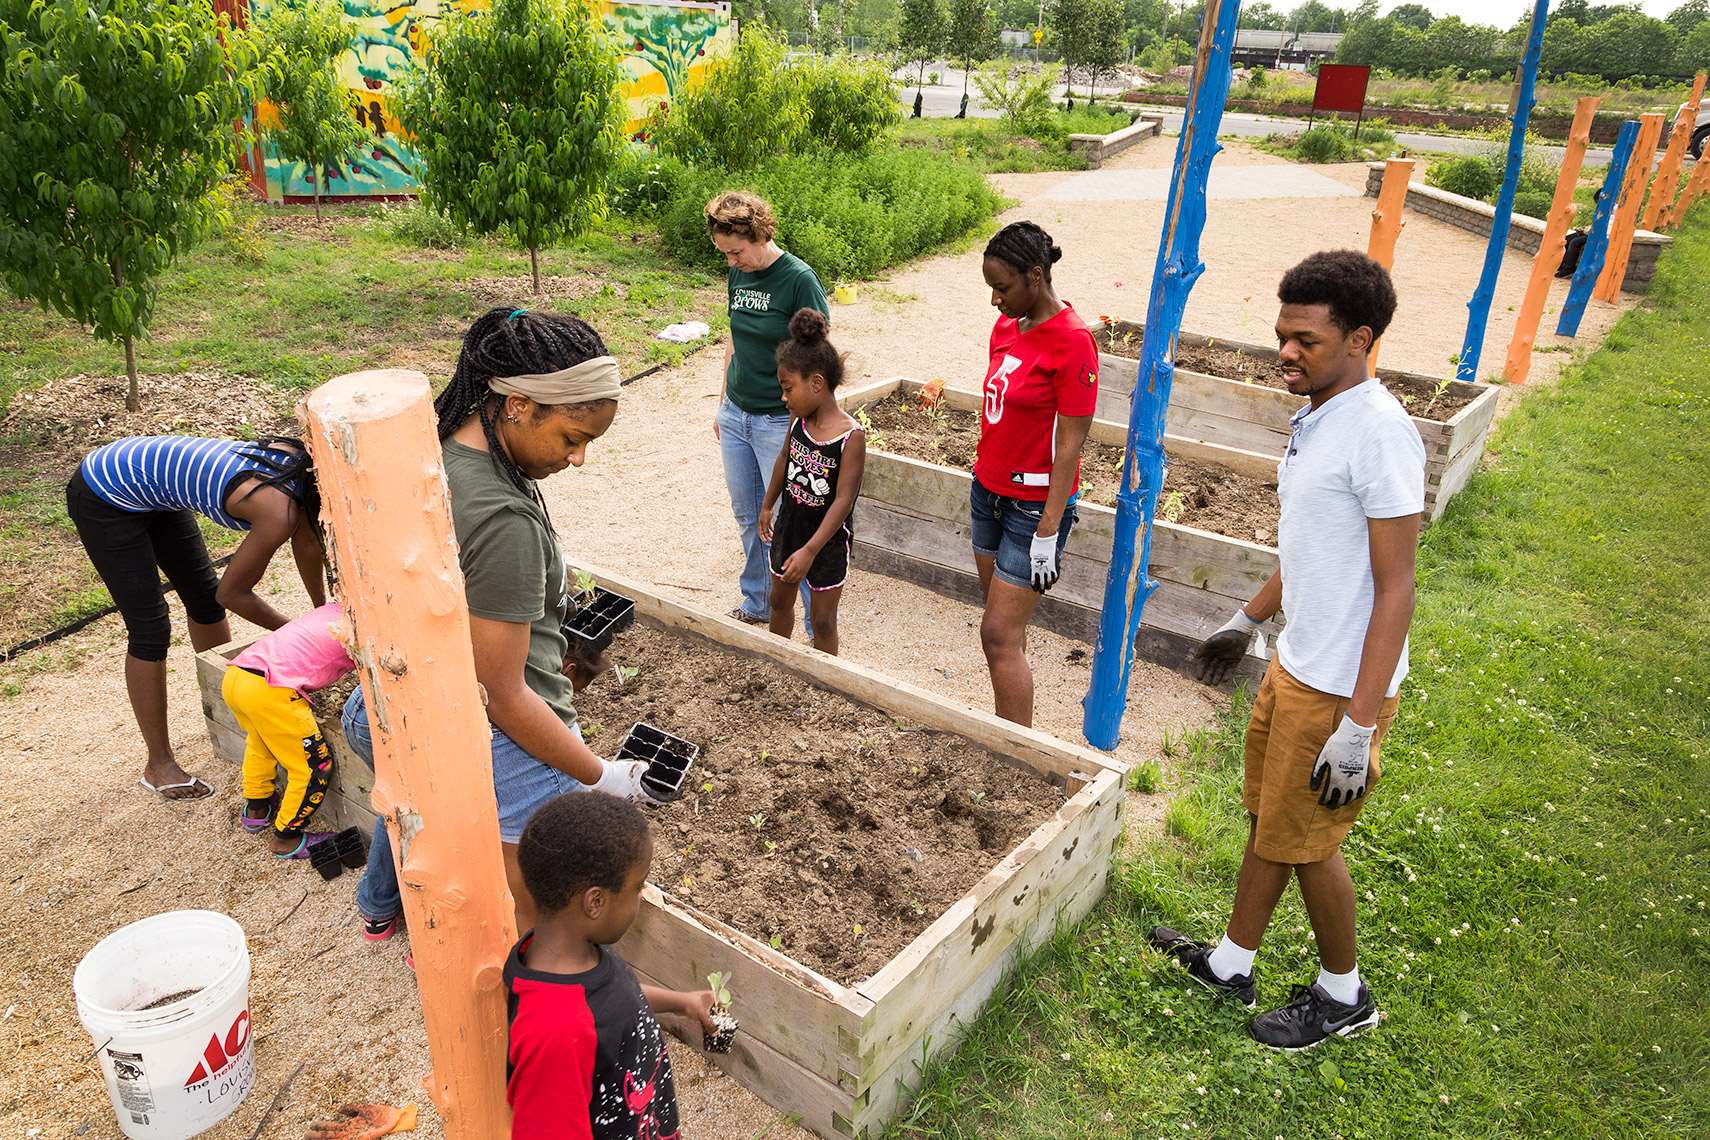 families working on garden plots at urban vacant lot